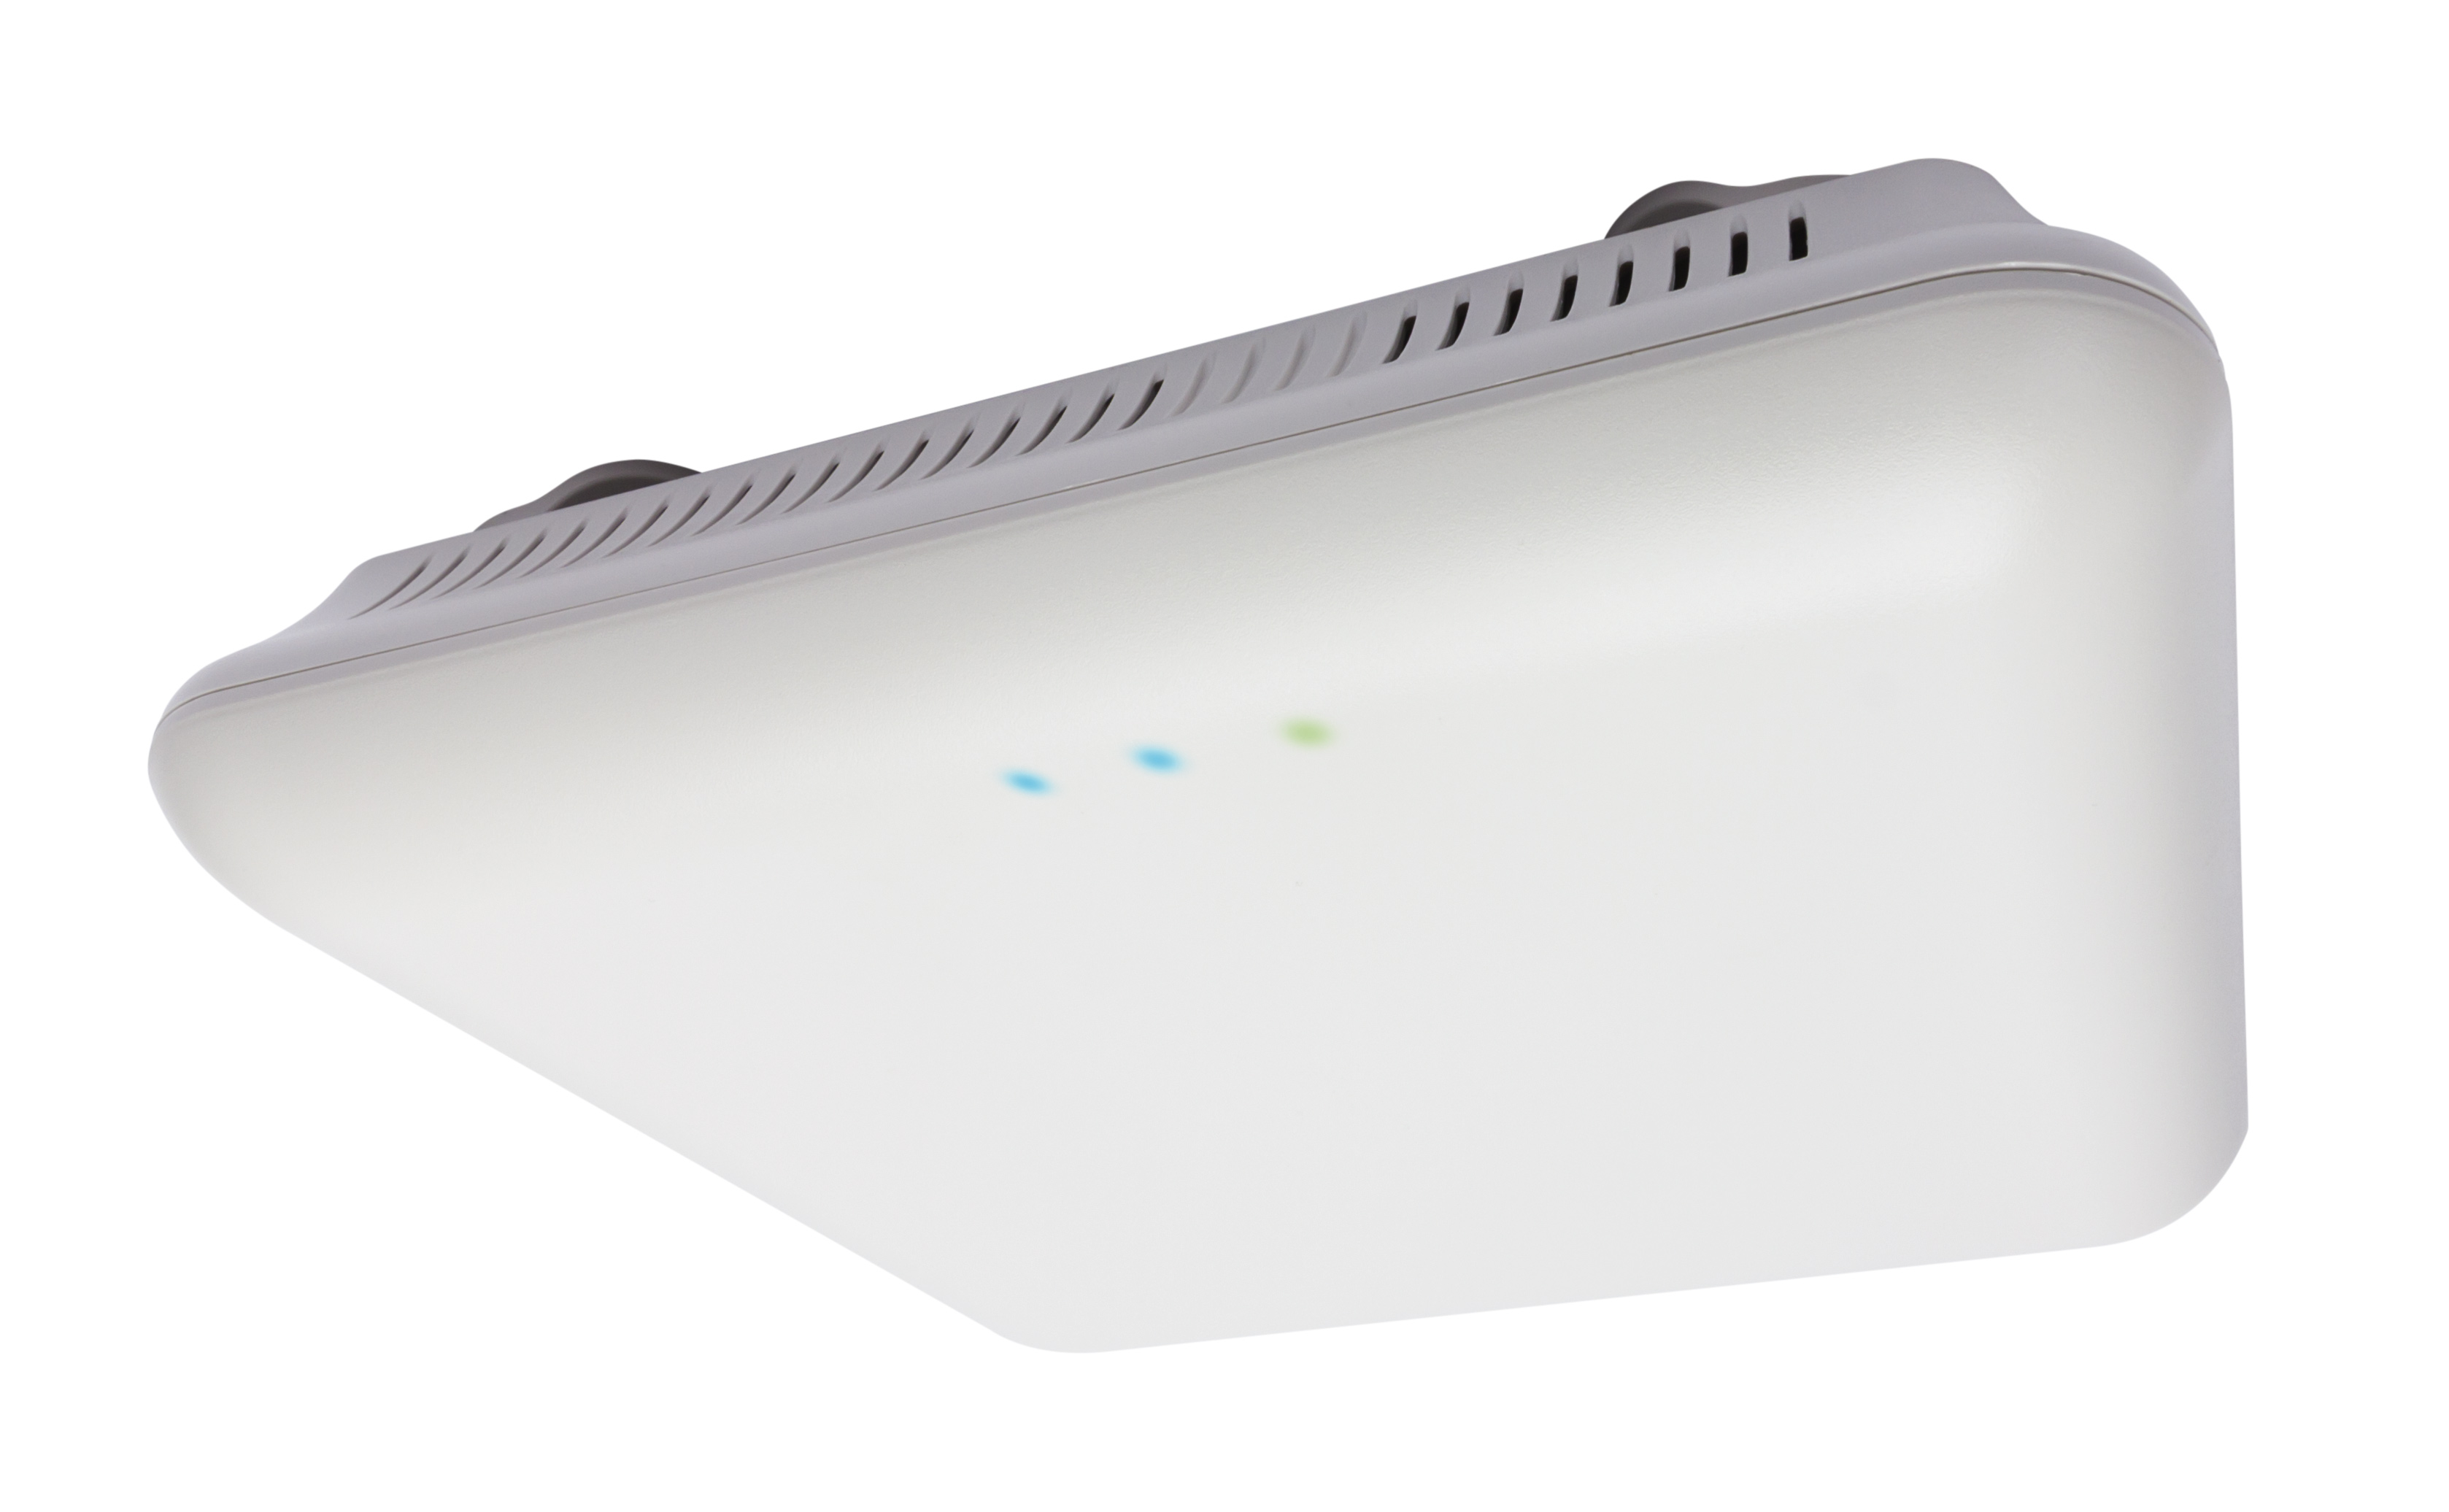 XAP-1610 LUXUL HIGH POWER DUAL-BAND AC3100 WIRELESS ACCESS POINT WITH ADVANCED 4x4 MU-MIMO 802.11ac W2 TECHNOLOGY